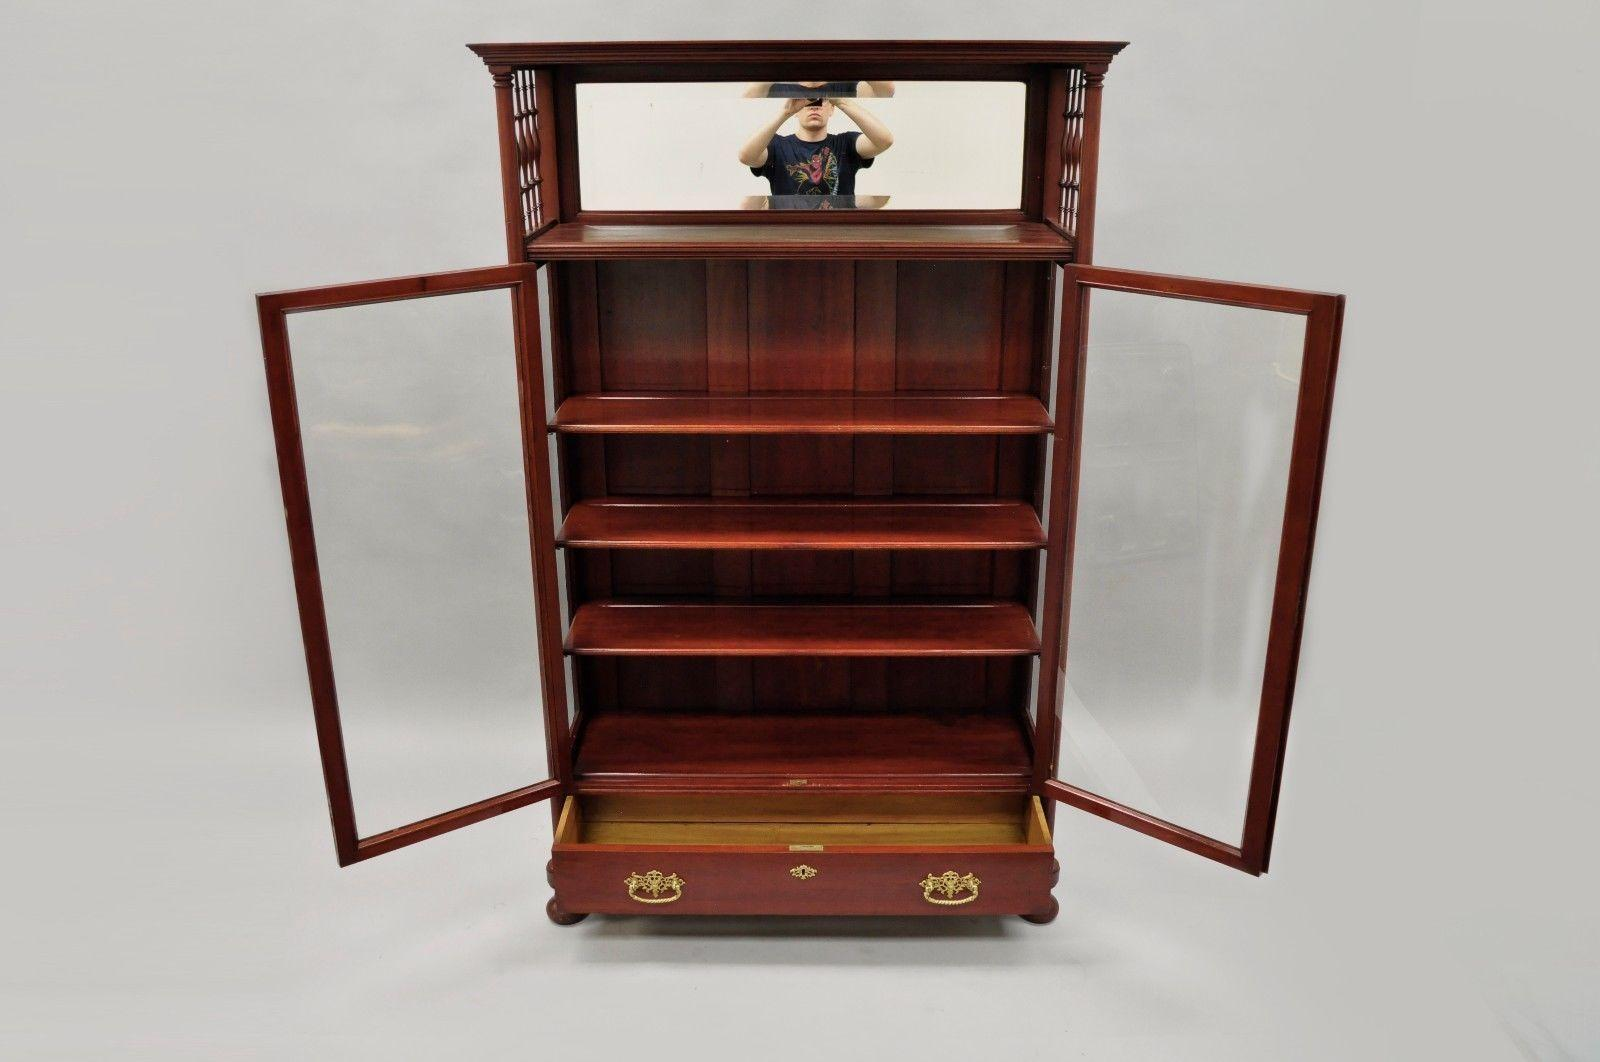 American Antique Victorian Two Door Mahogany U0026 Glass Bookcase Curio Cabinet  Display Shelf For Sale